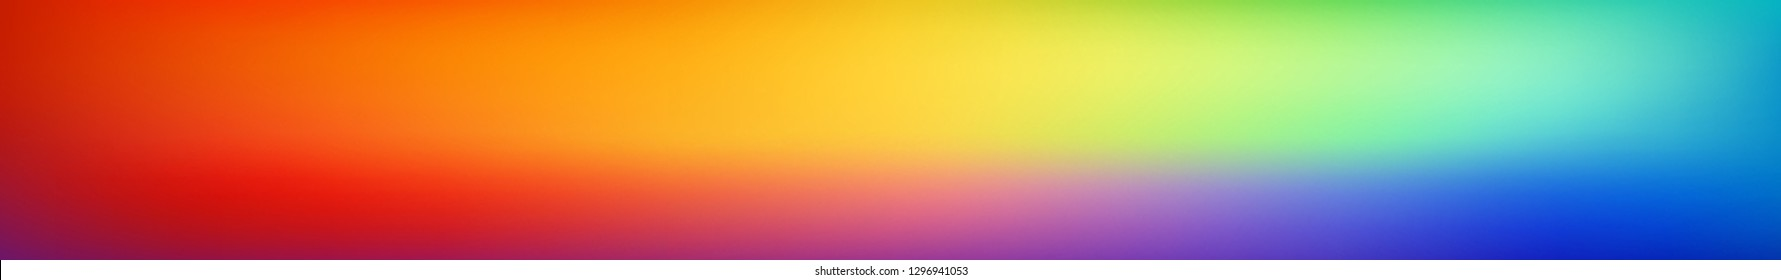 Panoramic smooth and blurry colorful gradient mesh background.  Horizontal view for a glass panels - skinali. Bright rainbow colors. Easy editable soft colored vector template. Premium quality.